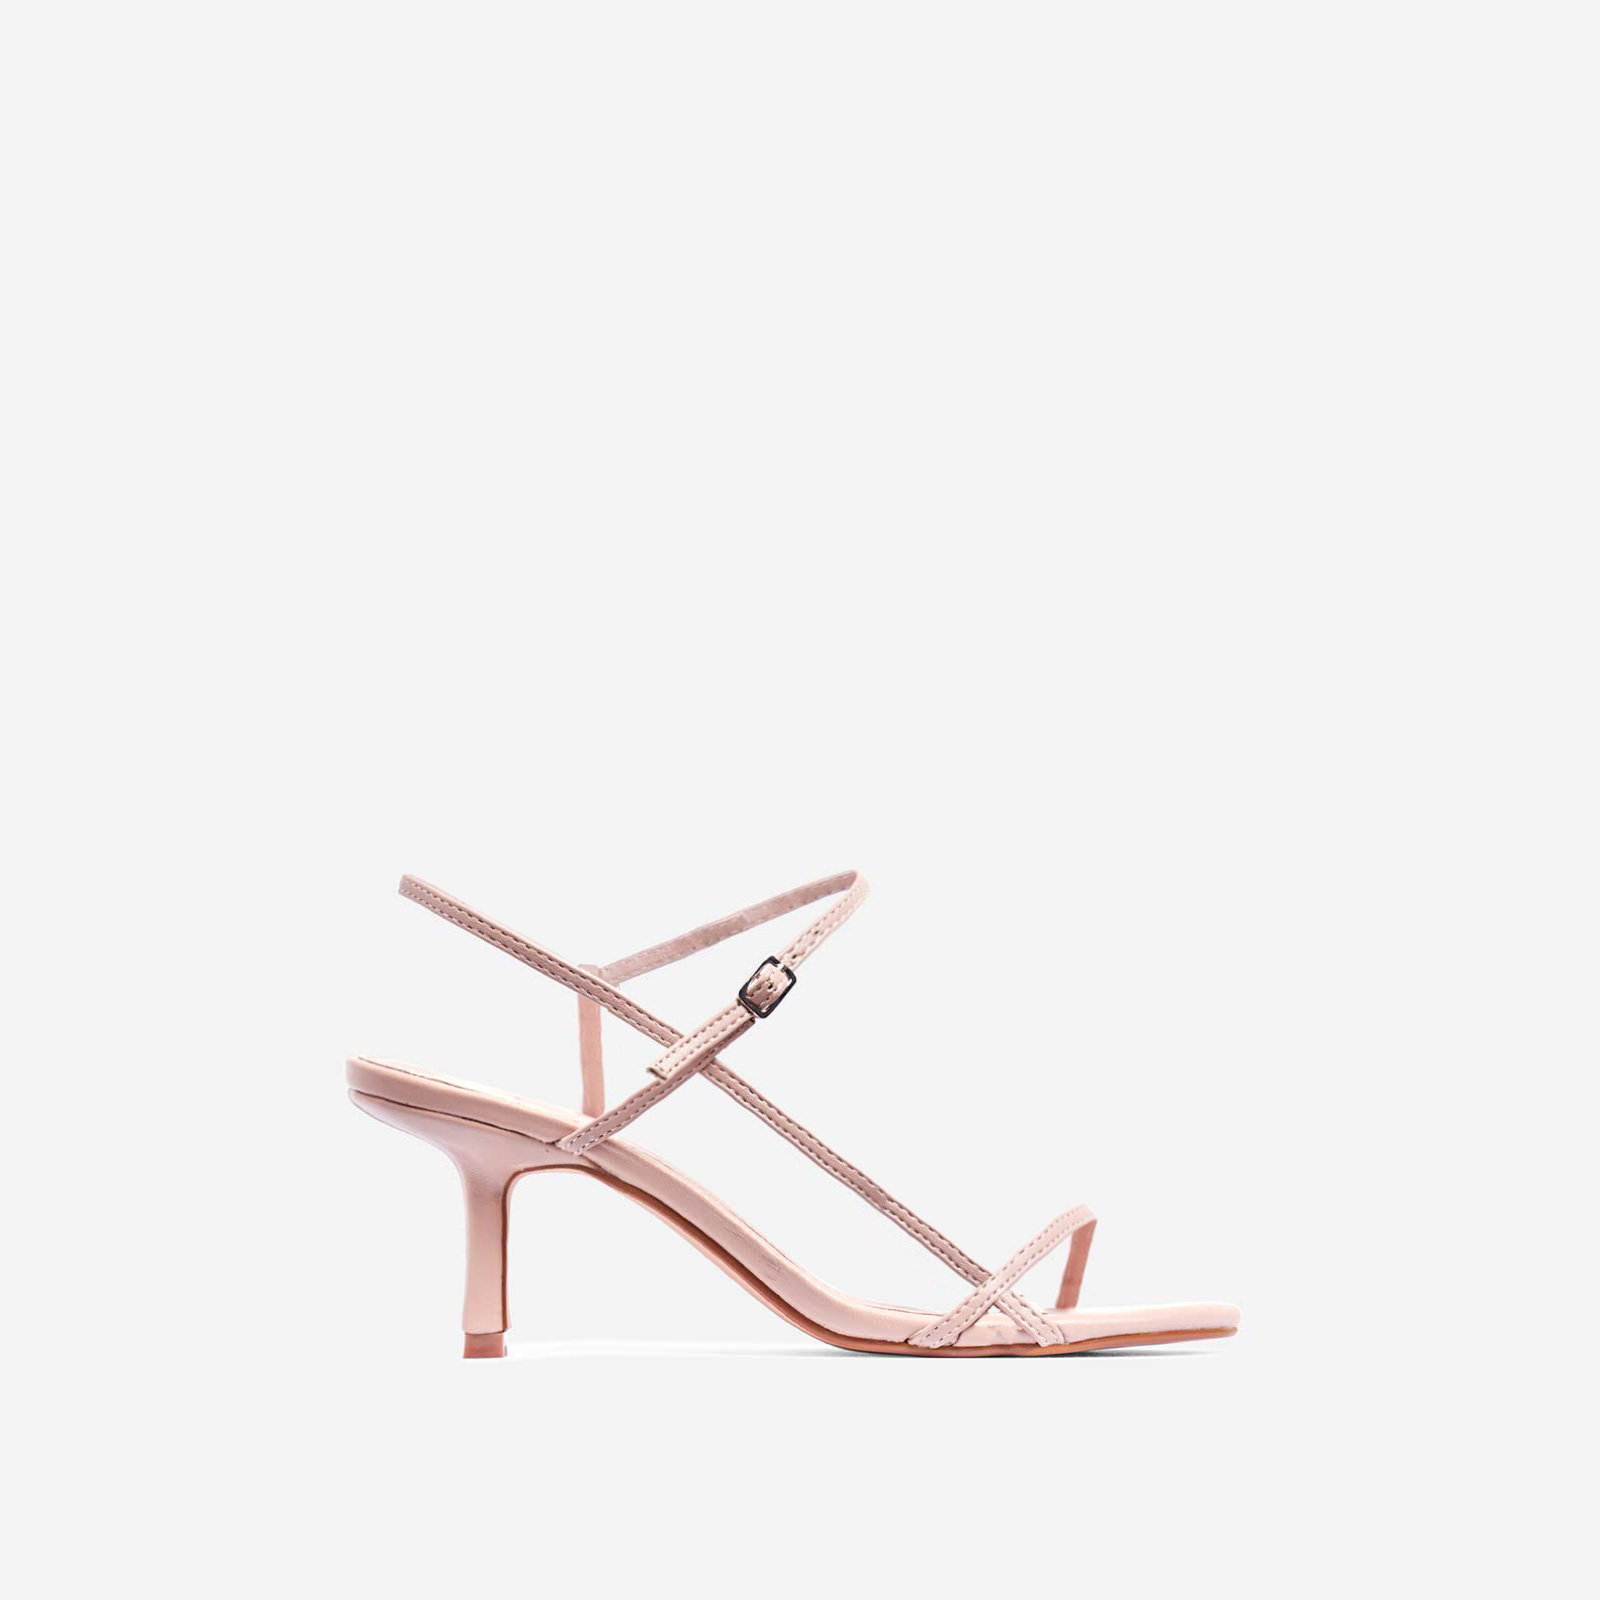 Voss Strappy Kitten Heel In Nude Faux Leather